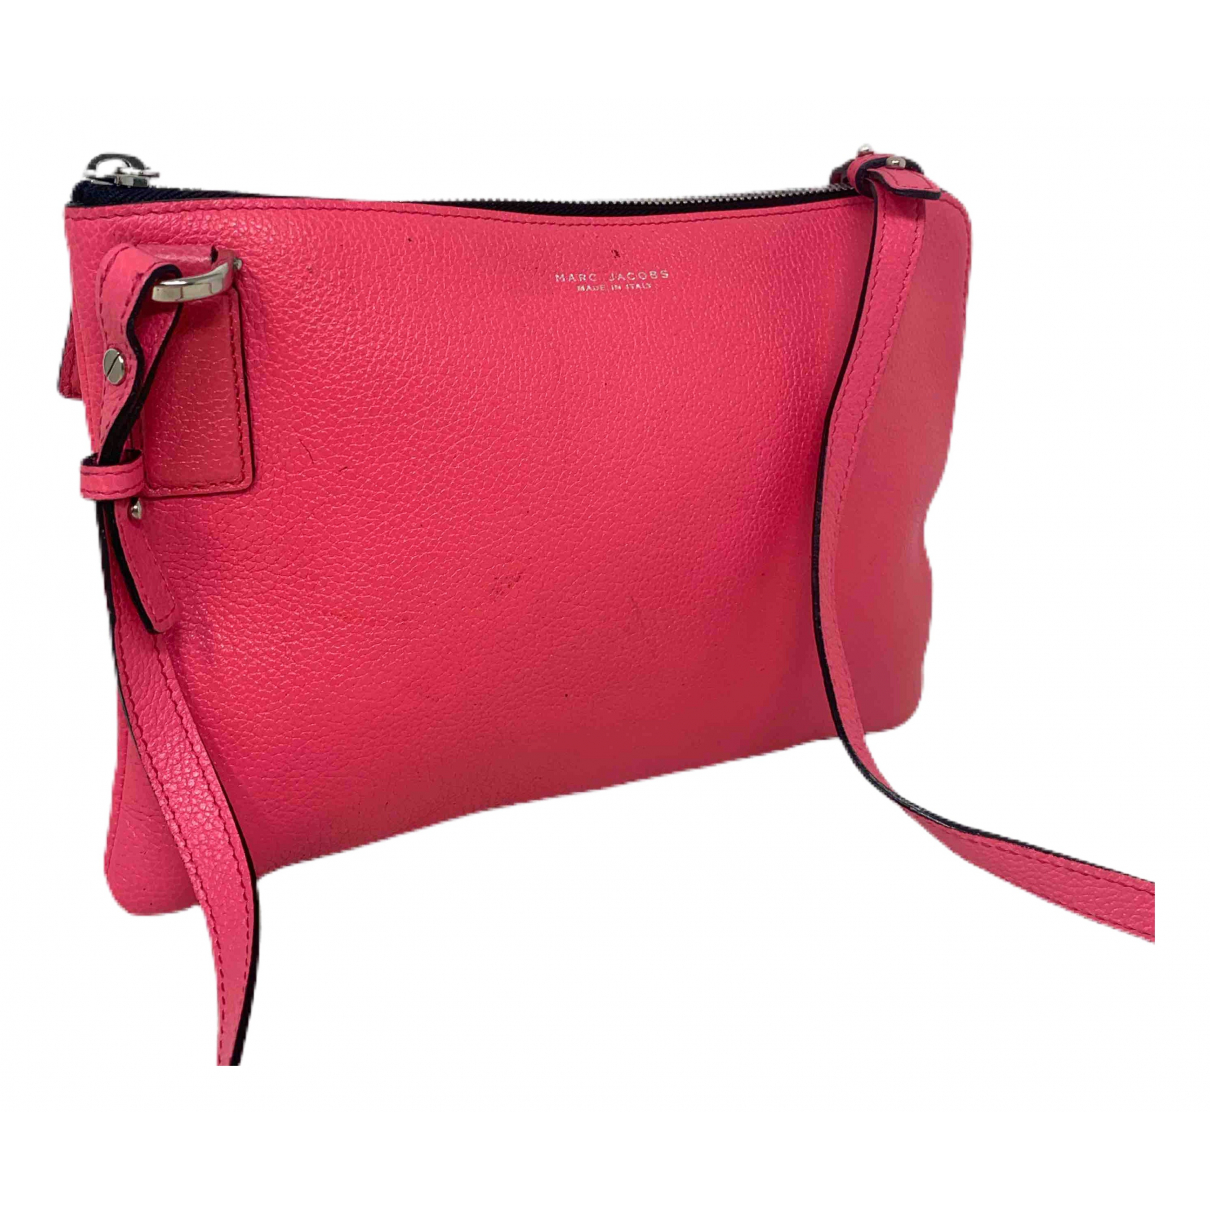 Marc Jacobs \N Pink Leather handbag for Women \N